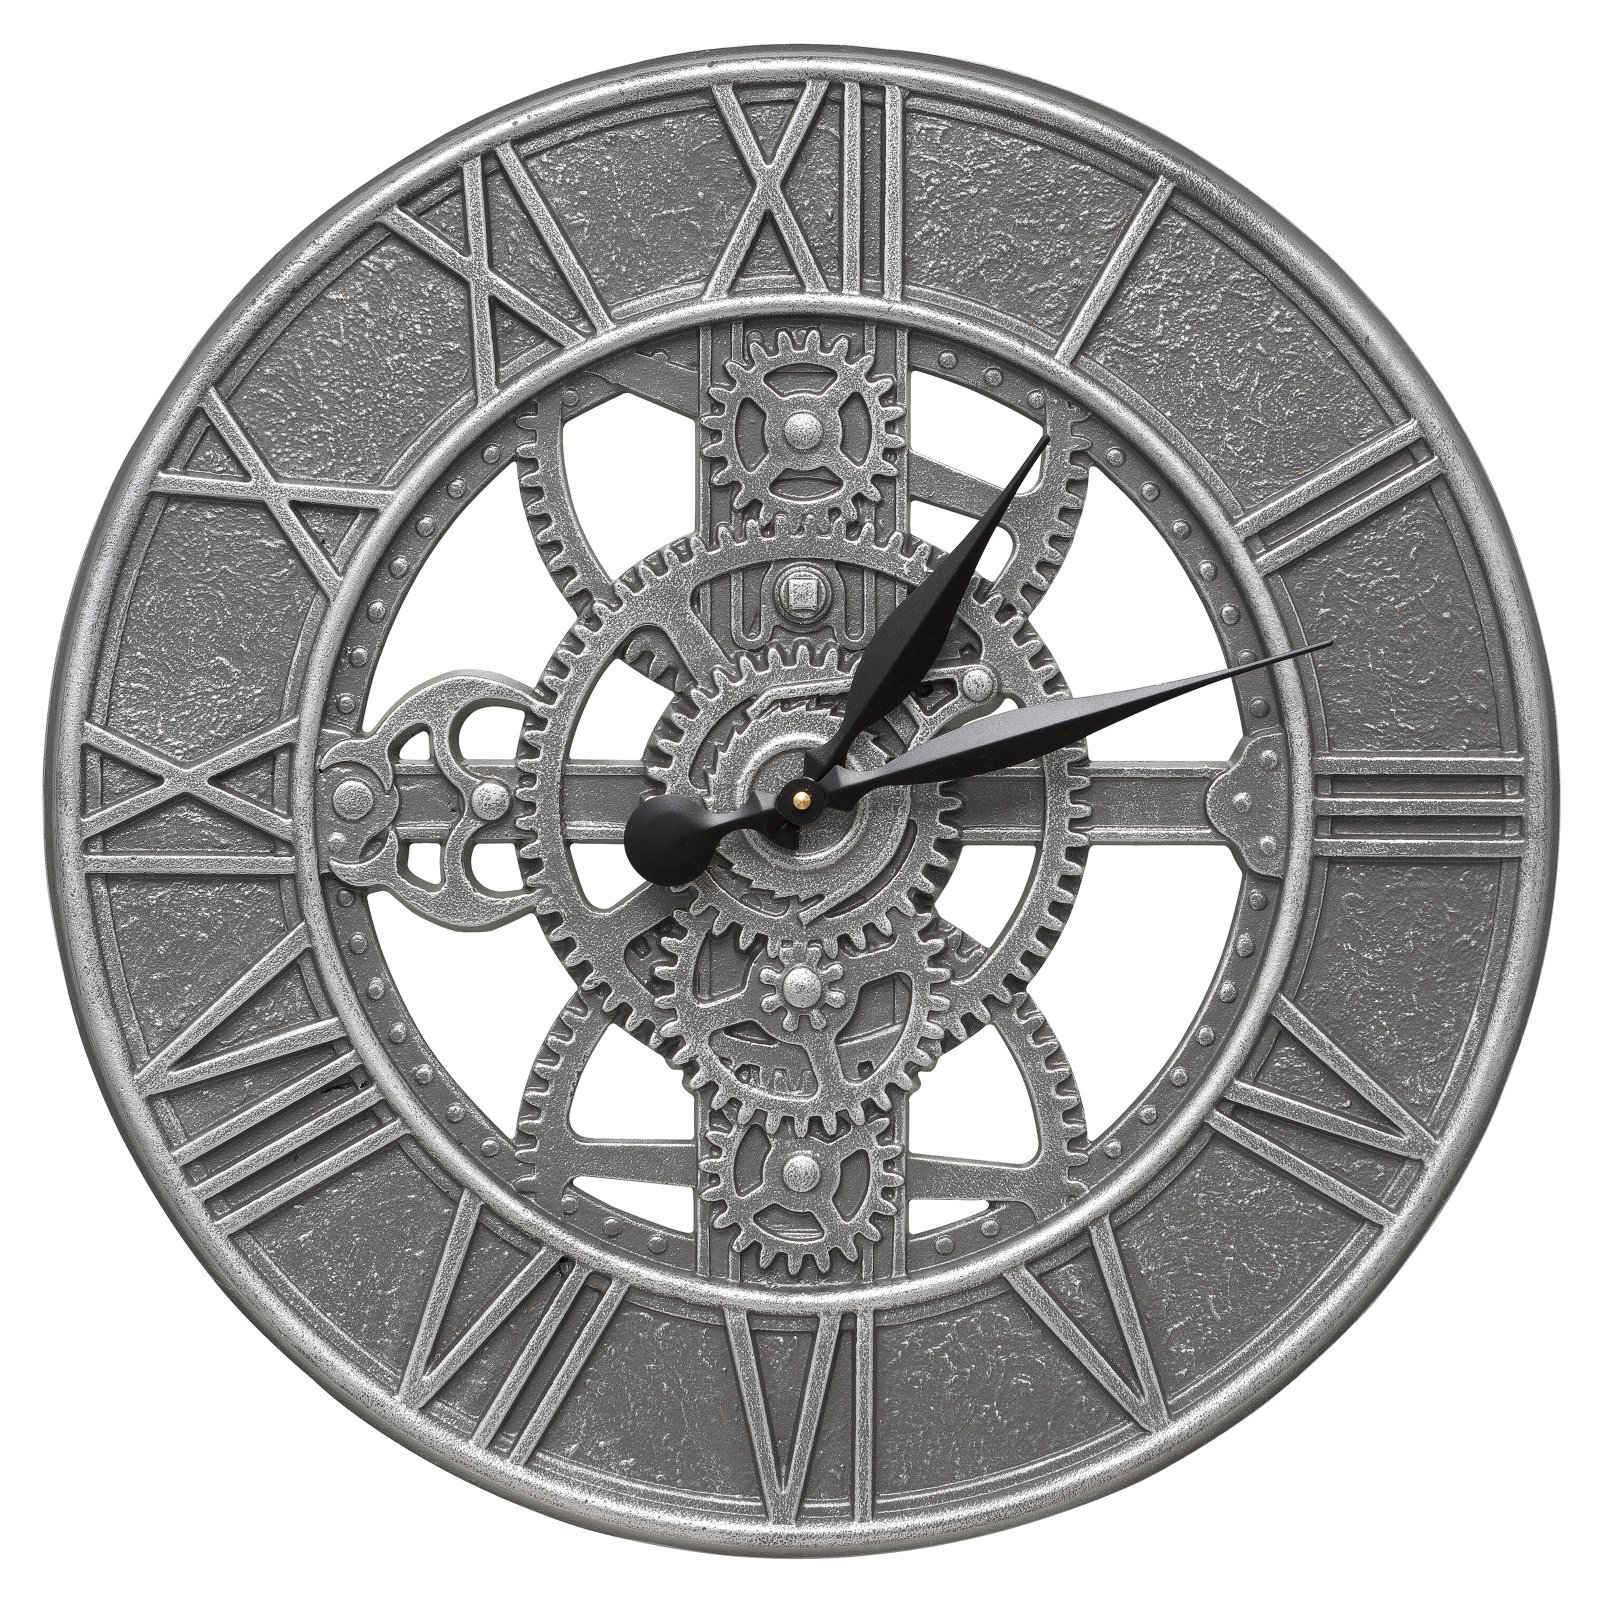 Whitehall Products Gear 21-in. Indoor/Outdoor Wall Clock